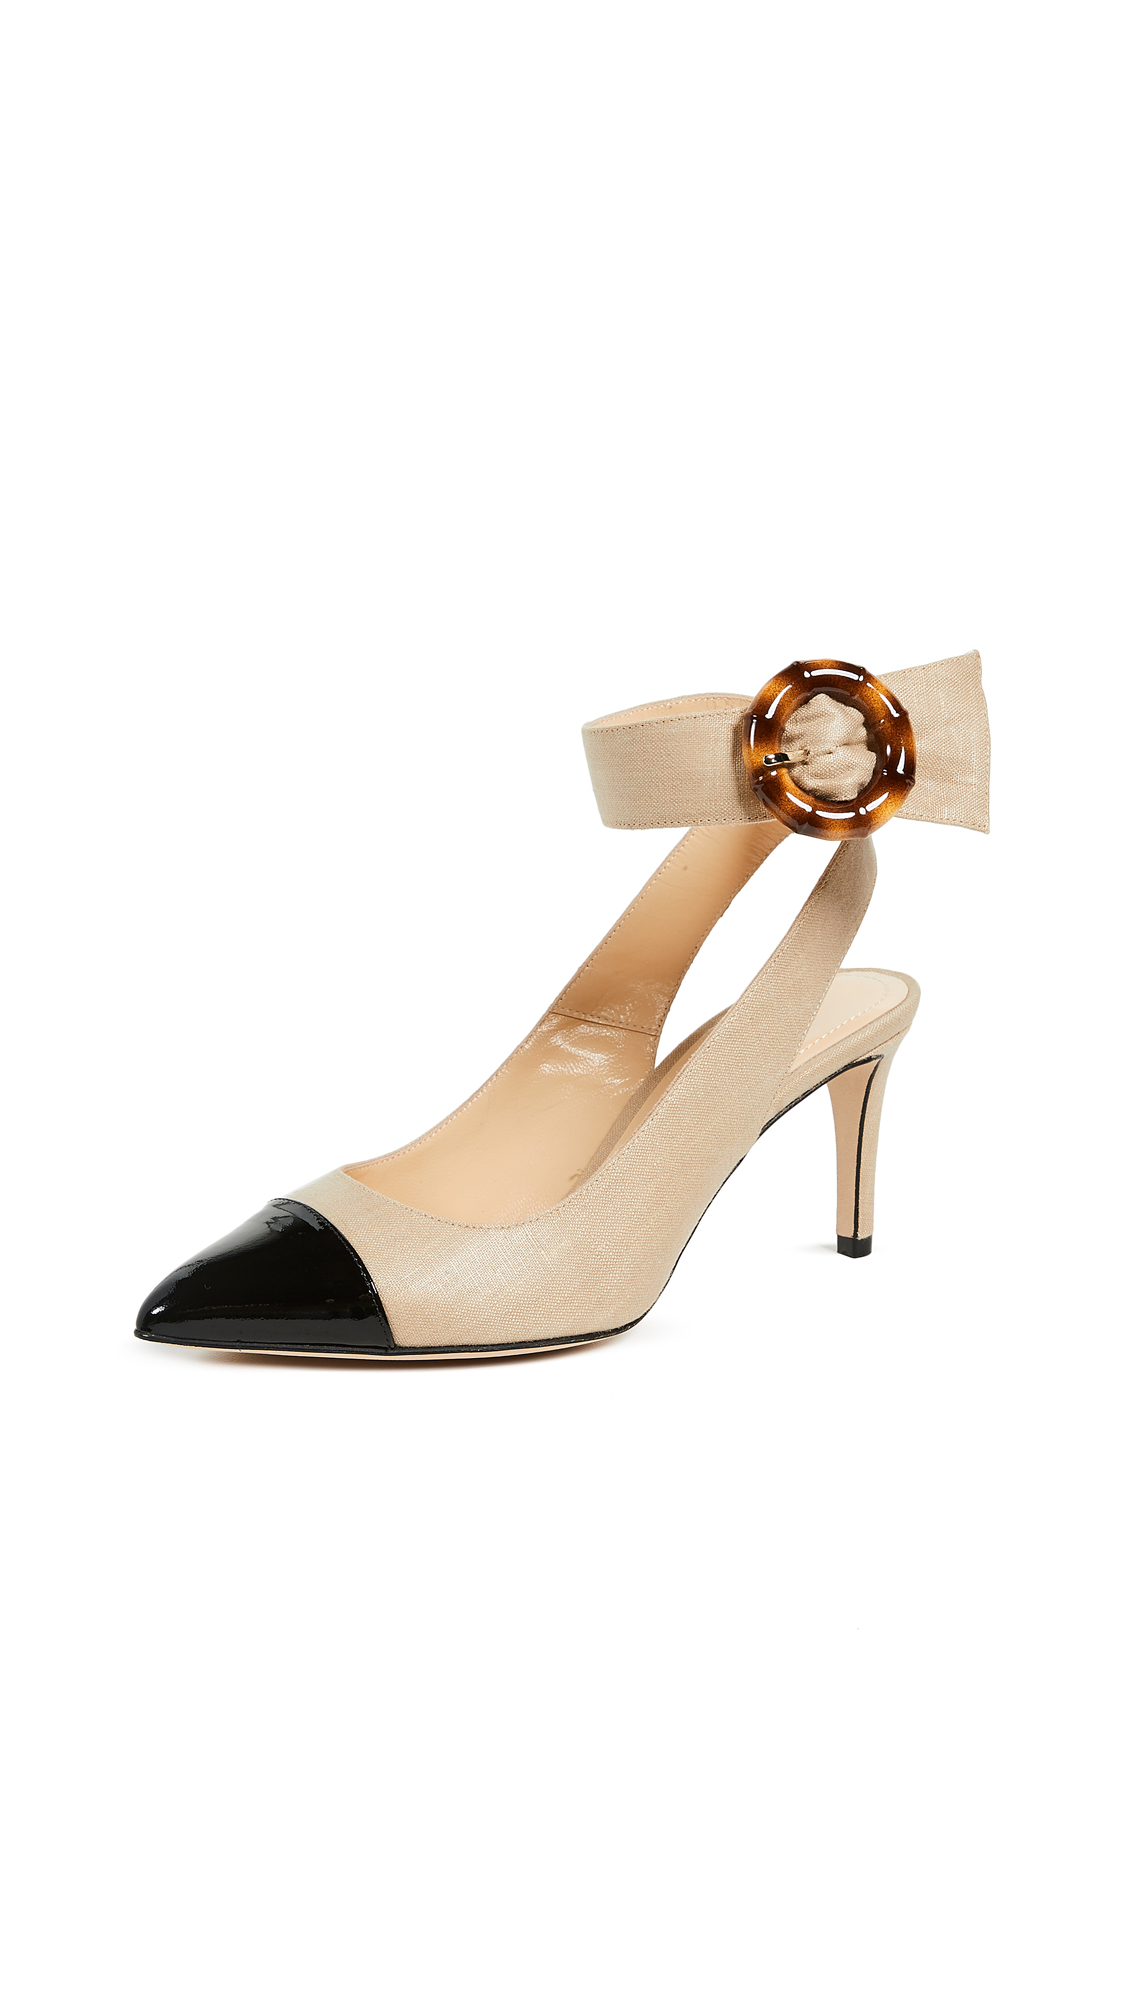 Chloe Gosselin Myra Pumps - Beige/Black